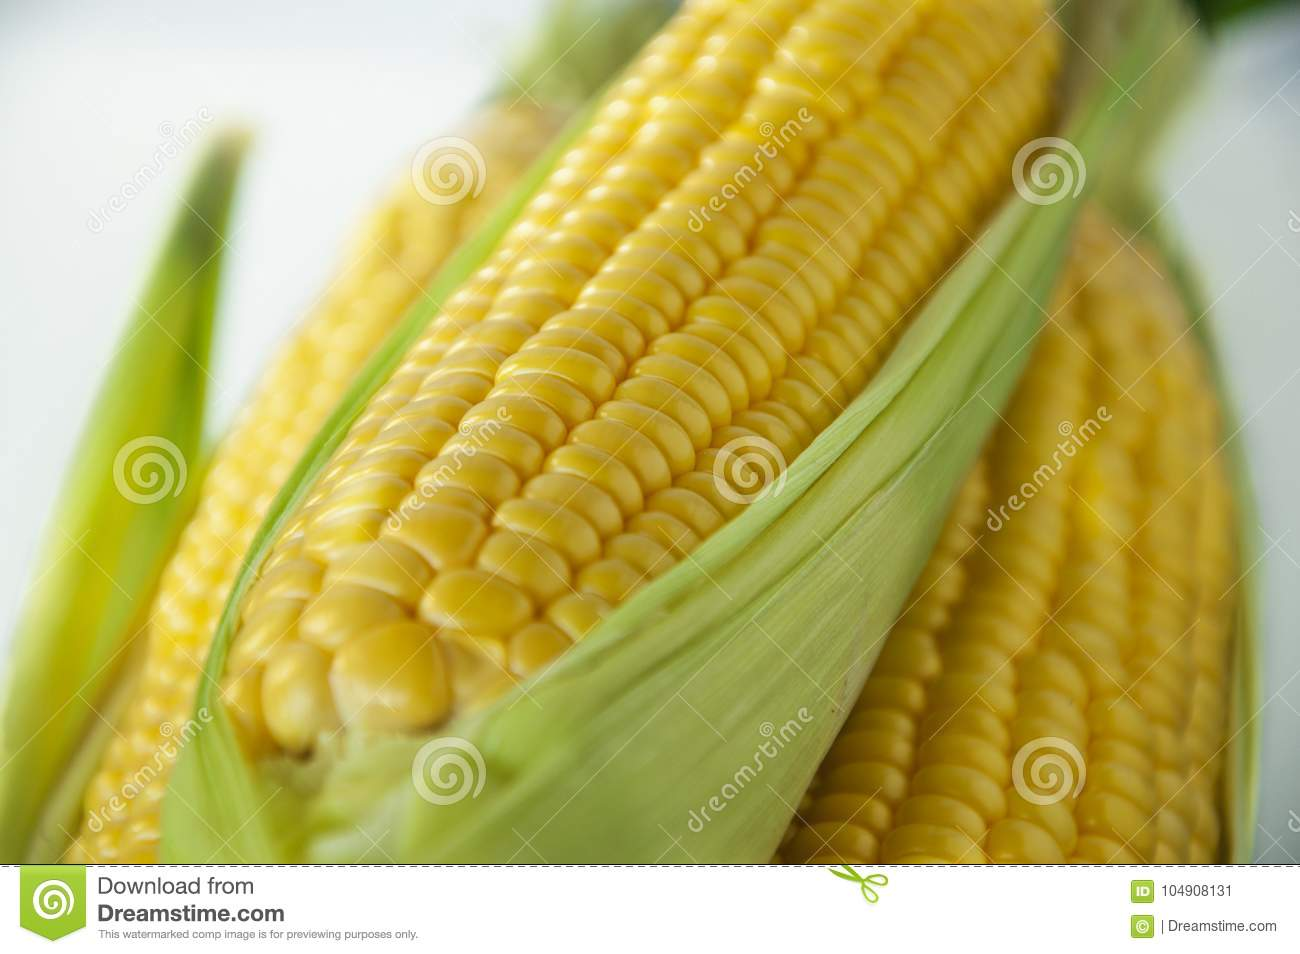 An important human staple food, maize is a highly nutritious crop, high starch as food raw materials, are miscellaneous grains,